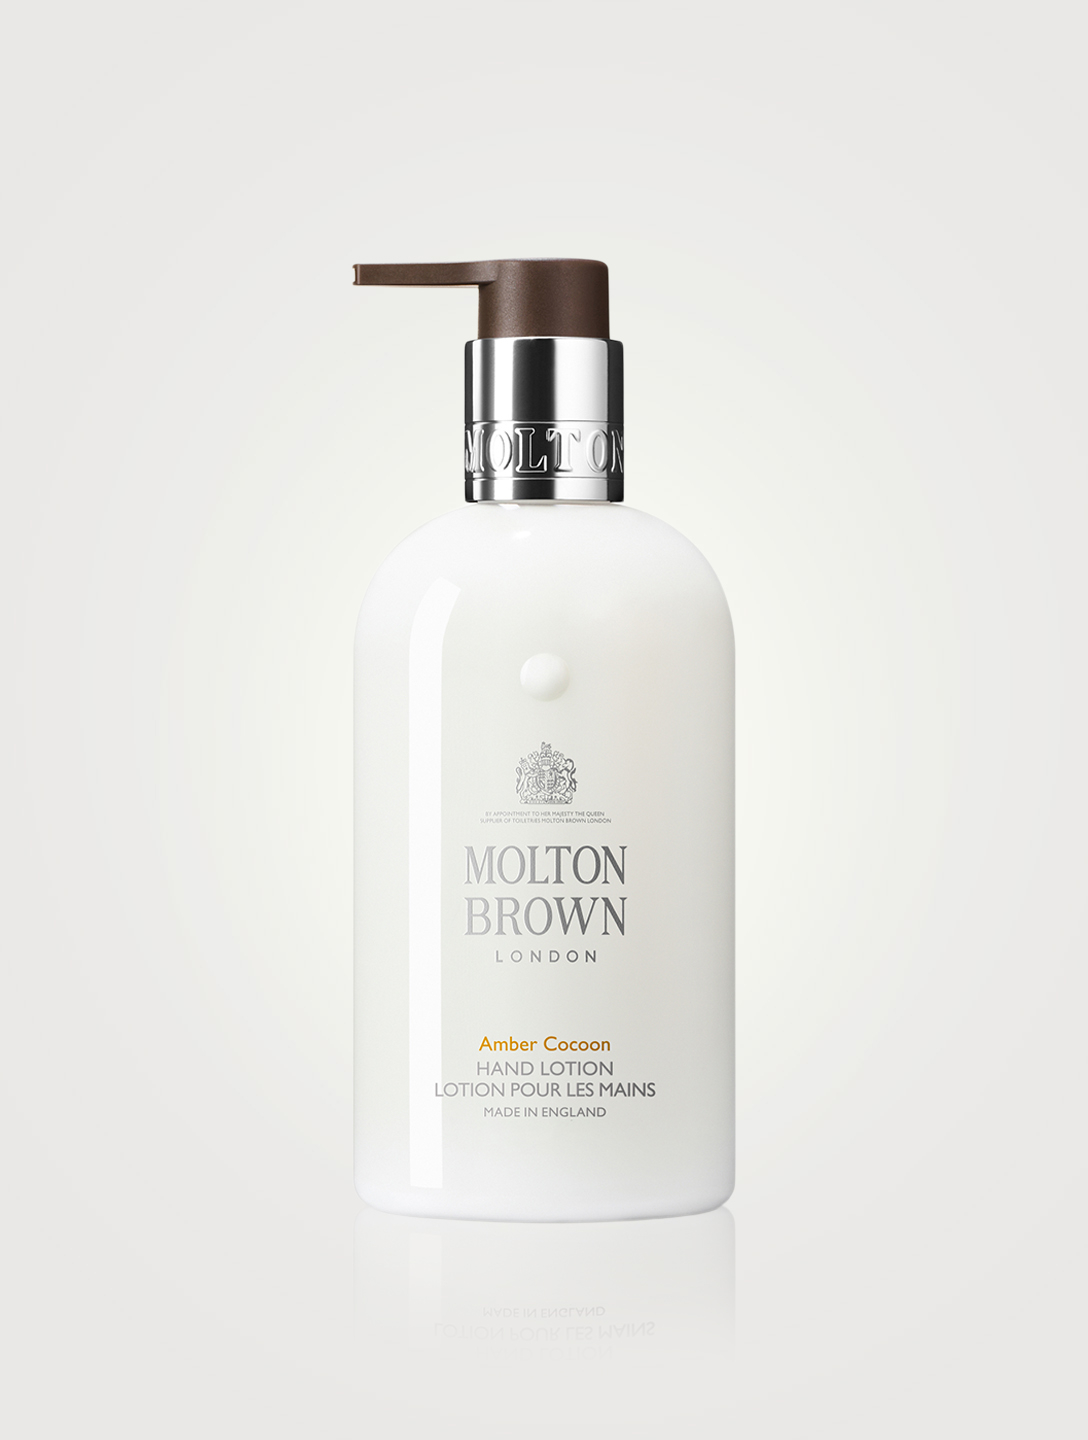 MOLTON BROWN Amber Cocoon Hand Lotion Beauty